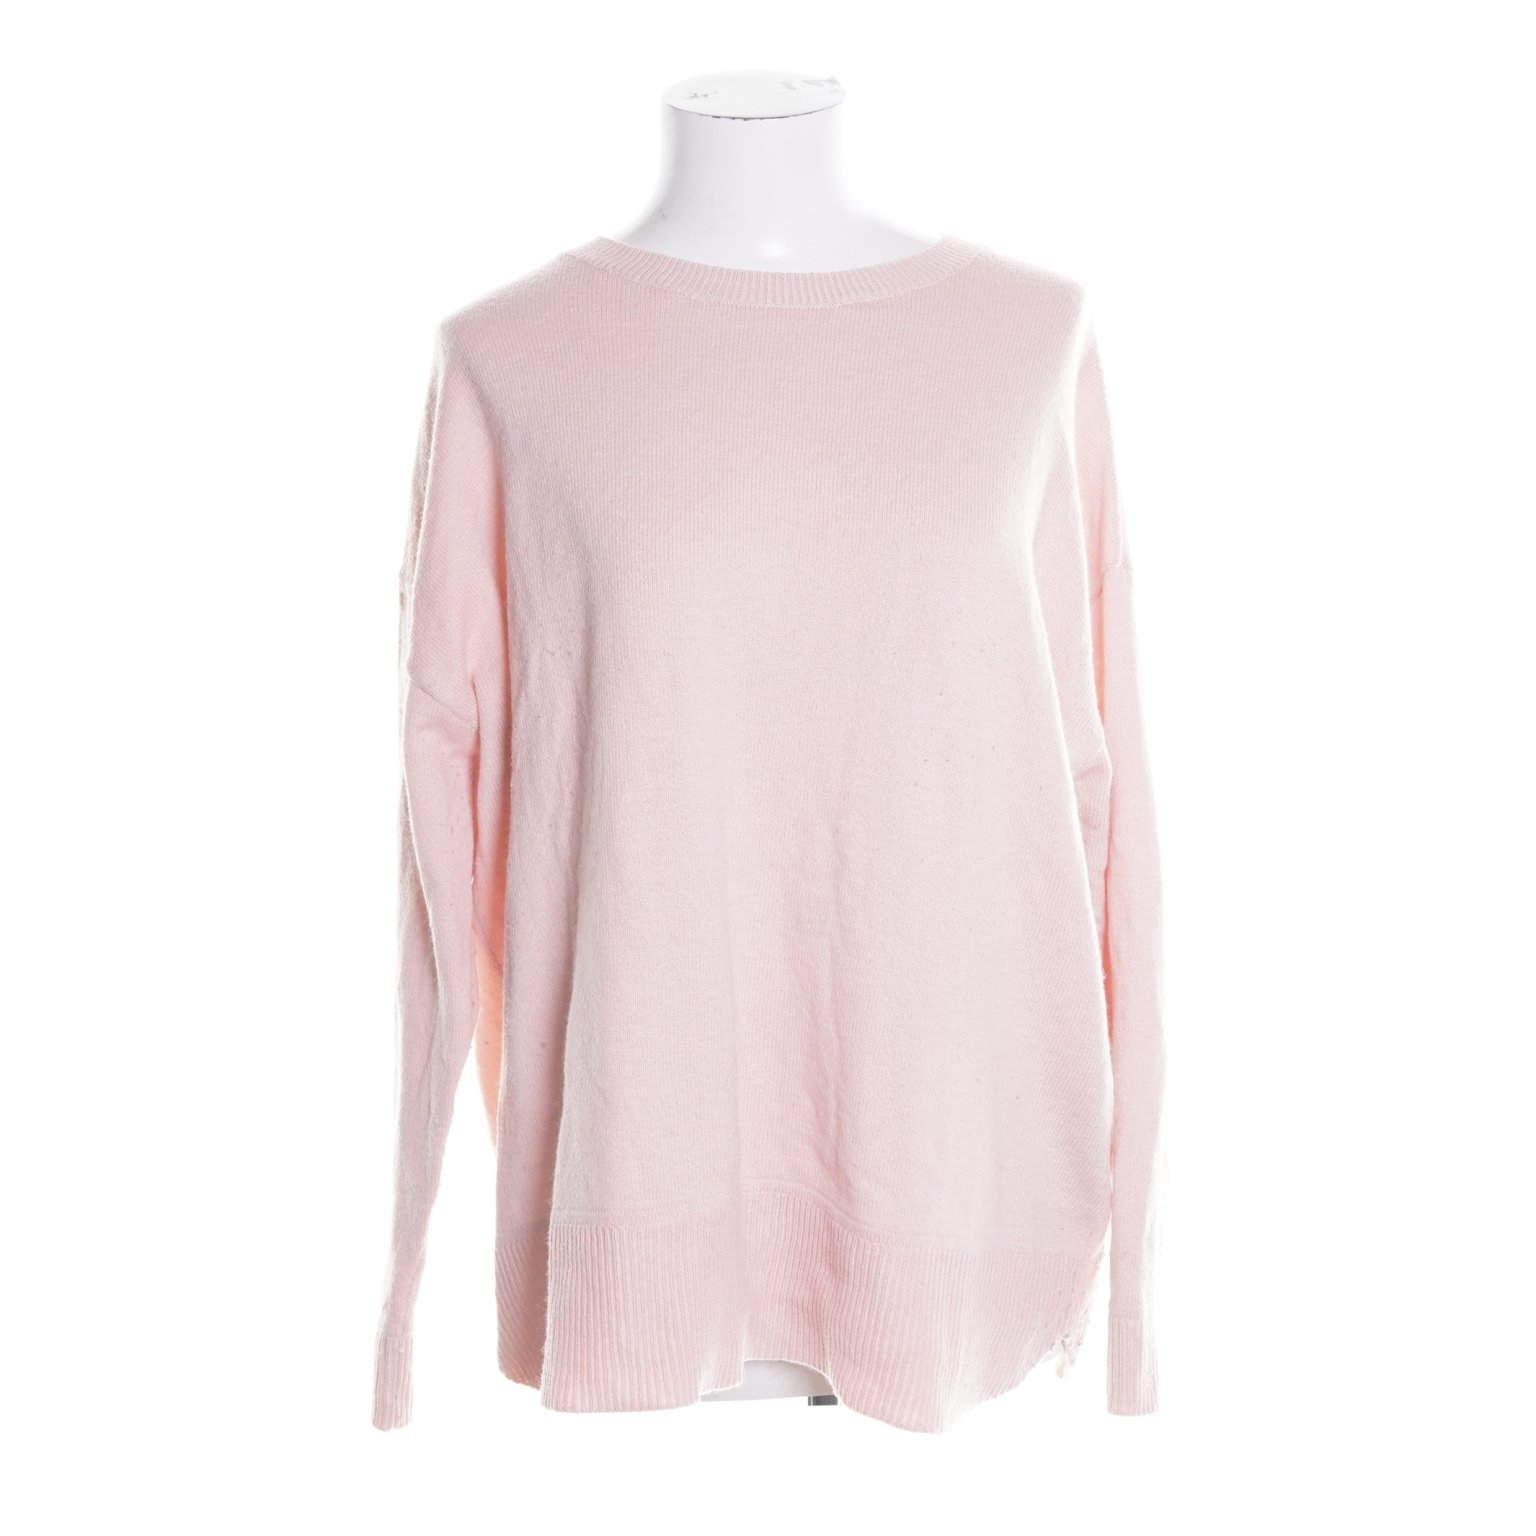 H&M Conscious Collection, Tröja, Strl: L, Rosa, Polyester/Polyamid/Ull